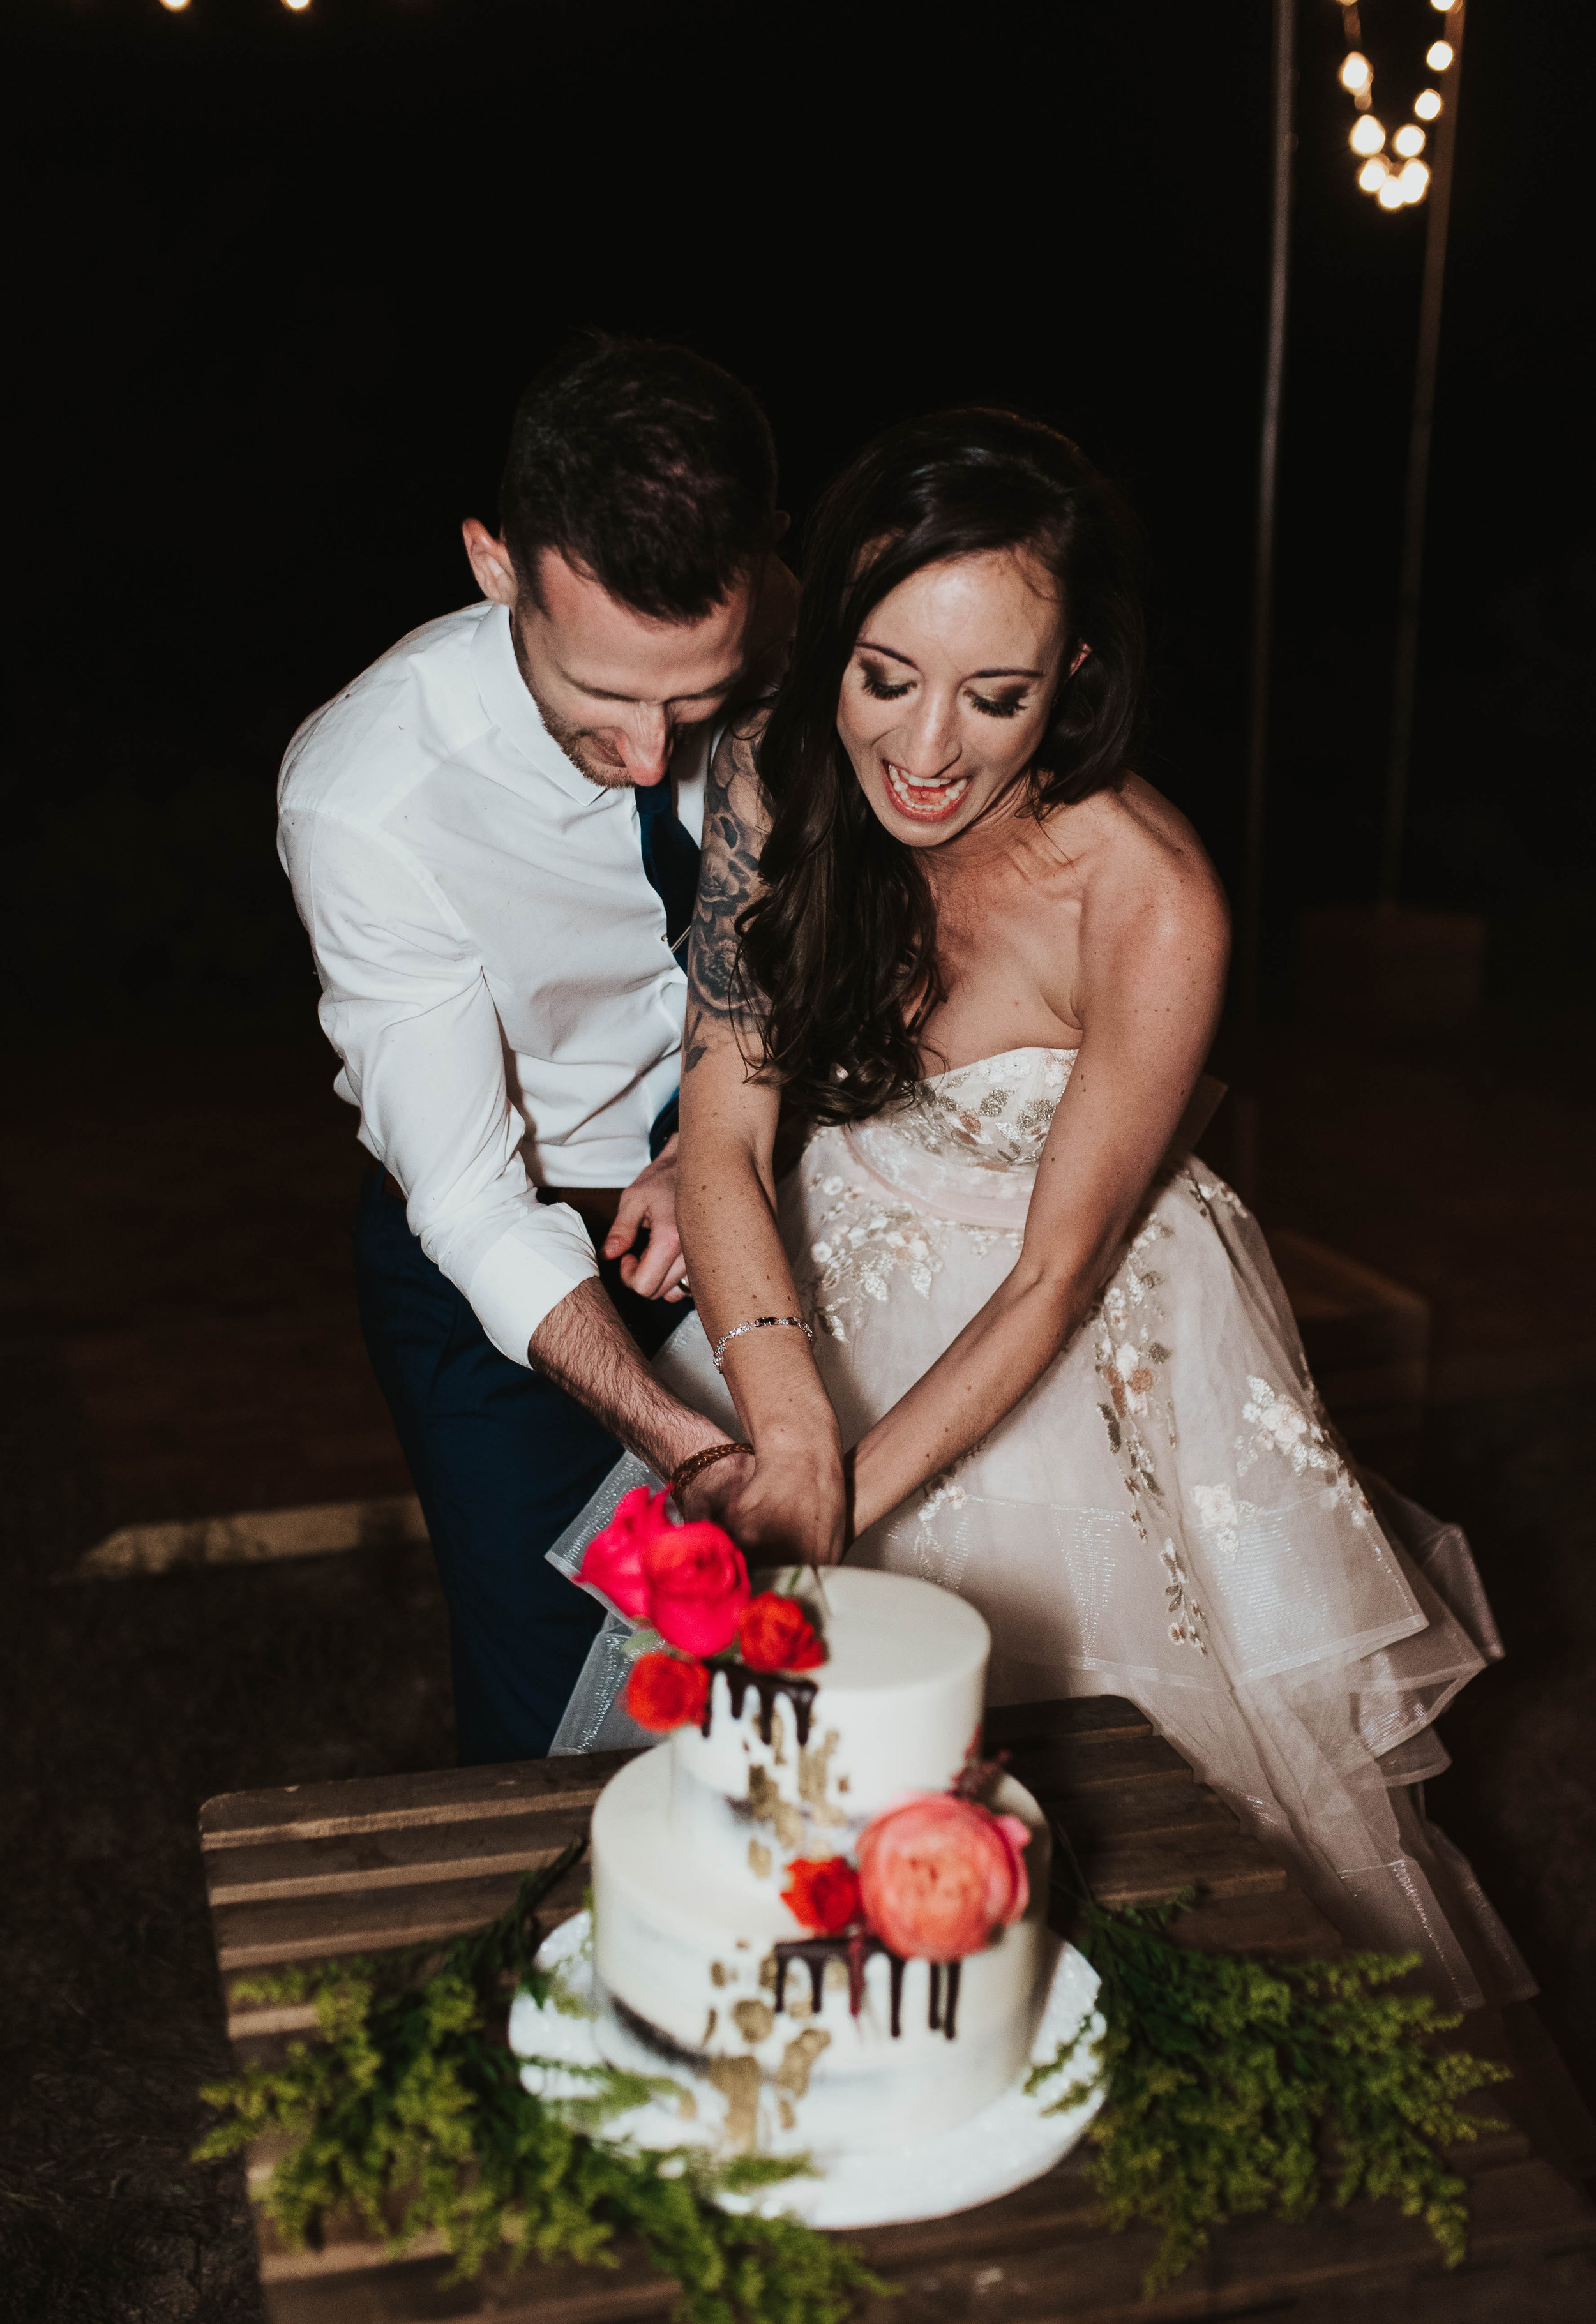 Desert Wedding at Tela Peralta - Arizona florist Phoenix scottsdale Mesa chandler Sedona Flagstaff Prescott - Cake Cutting